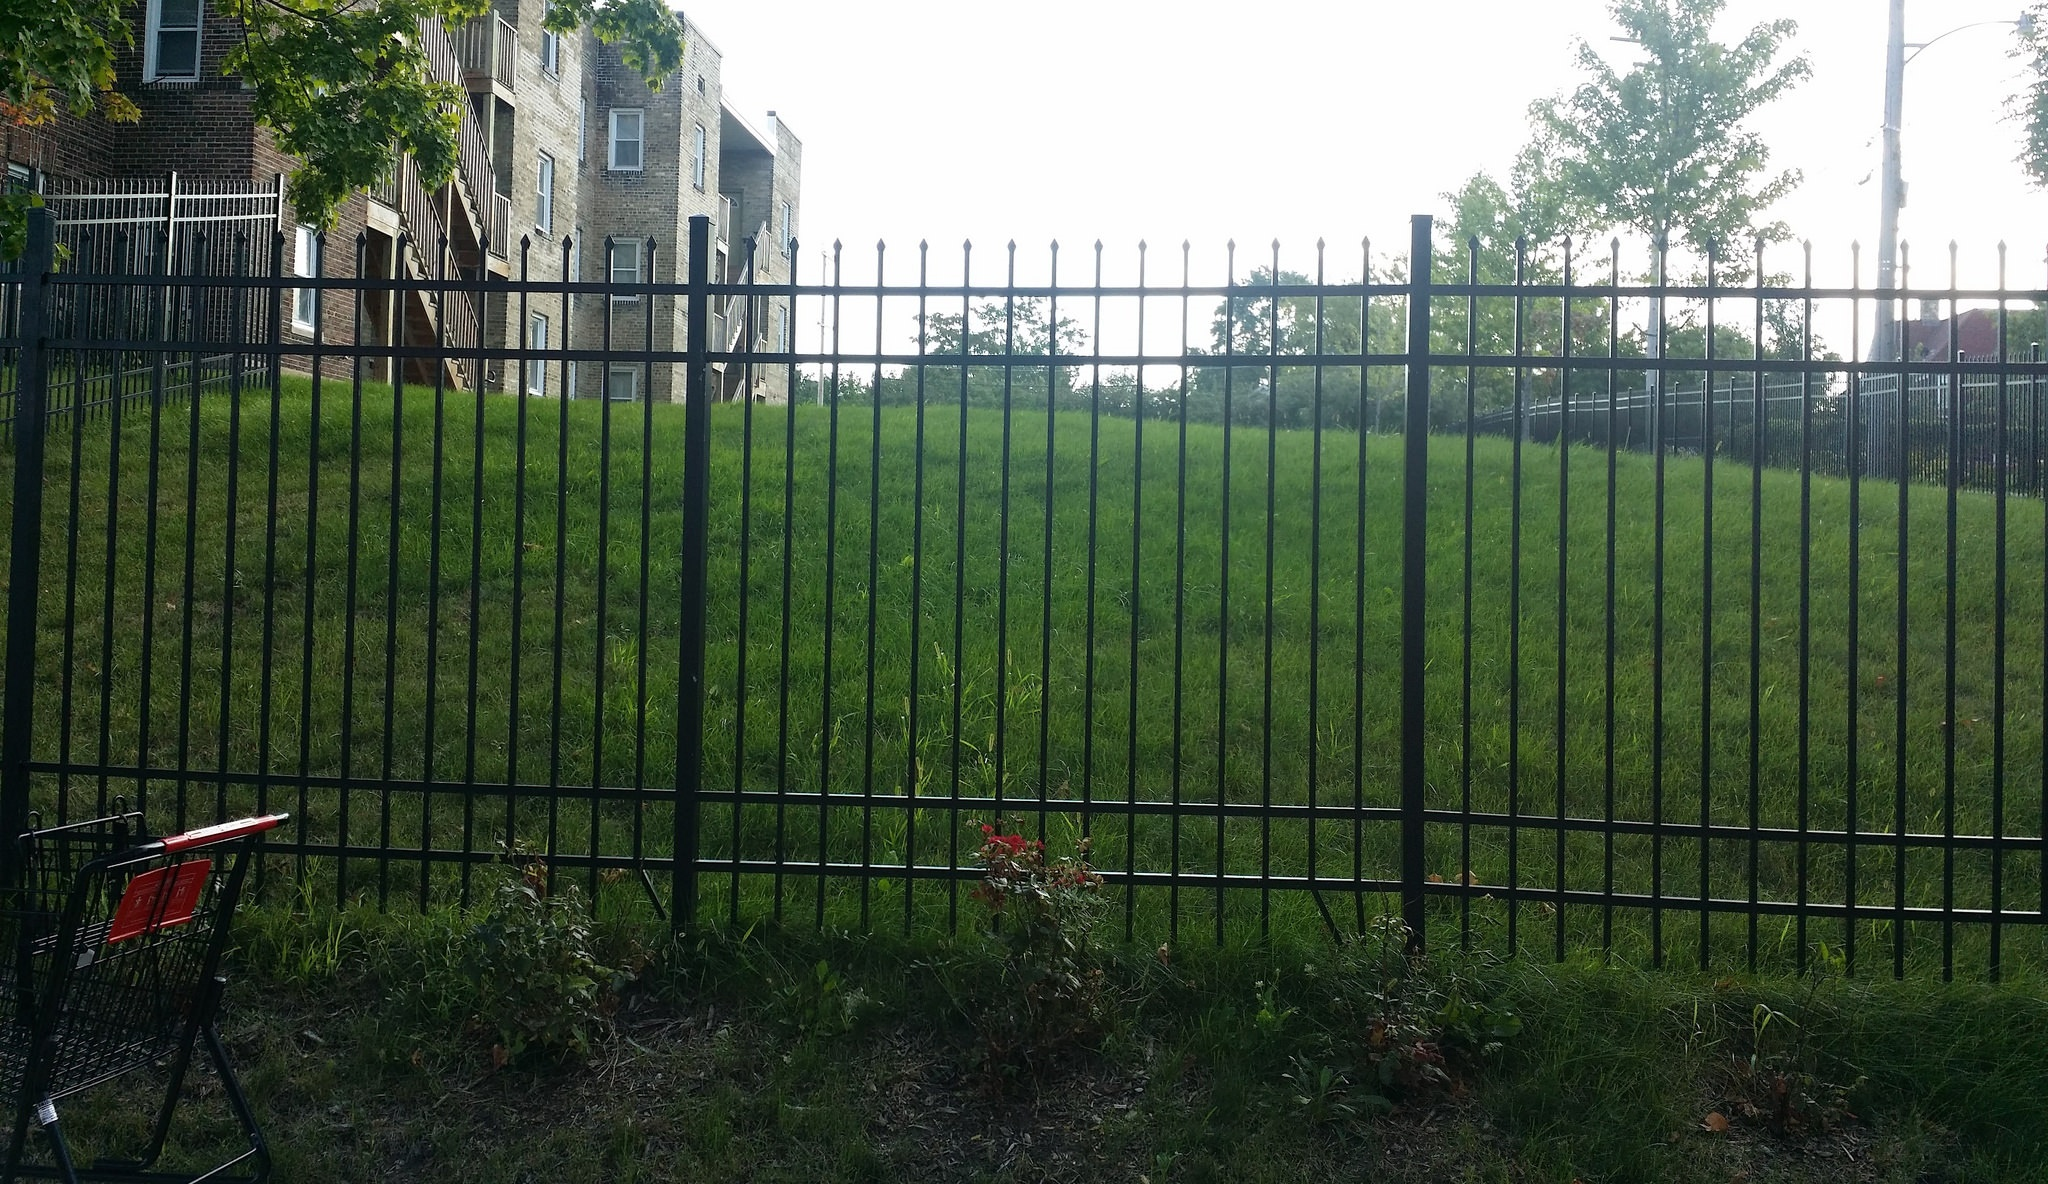 This Now Empty Lot In Wisconsin Has A Dark And Evil History That Will Never Be Forgotten 924 North 25th Street Apartment